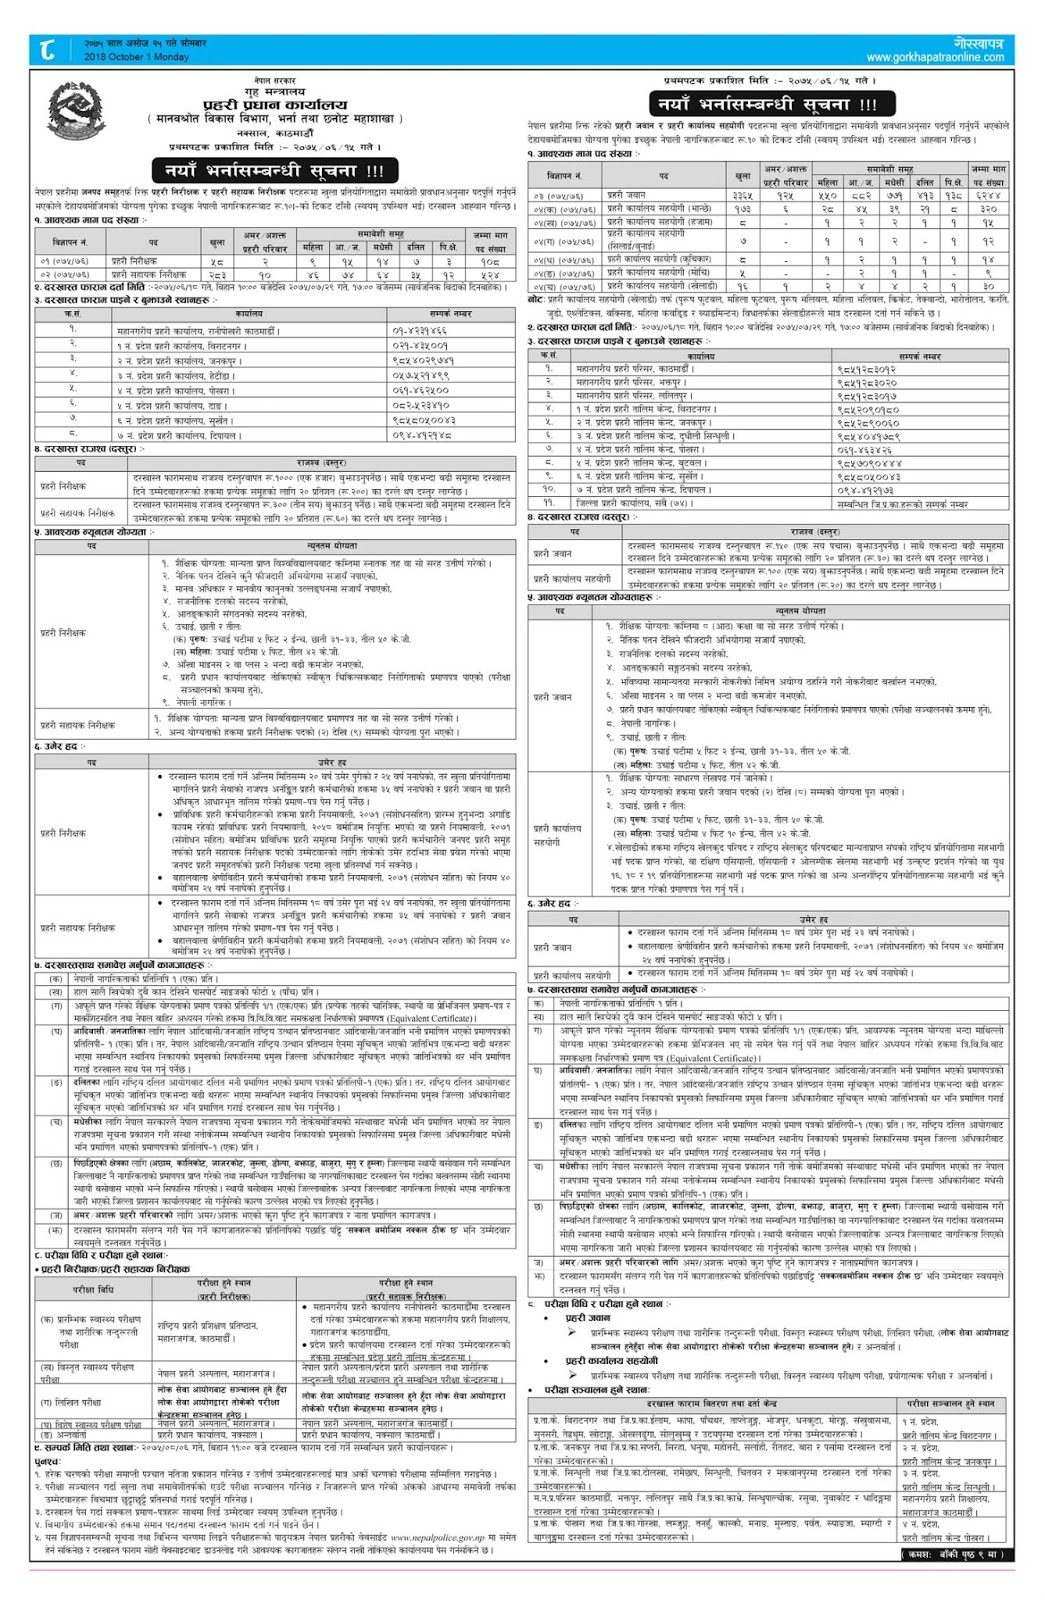 Vacancies Opened in Nepal Police Force in Inspector and Sub Inspector Post